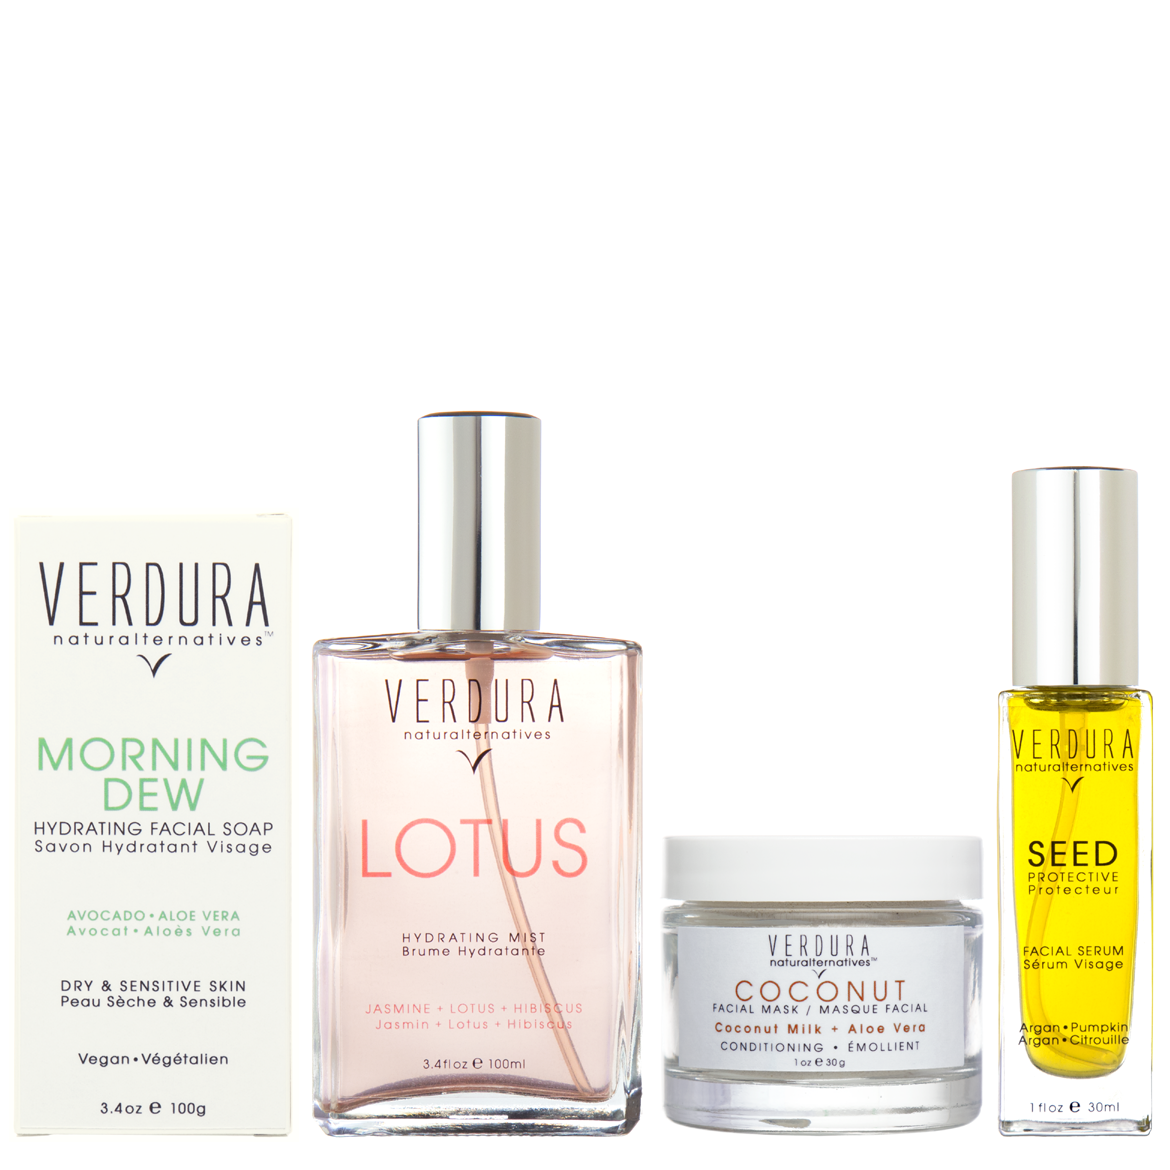 DRY/SENSITIVE SKIN REGIMEN | Natural-Vegan | VERDURA naturalternatives | Our